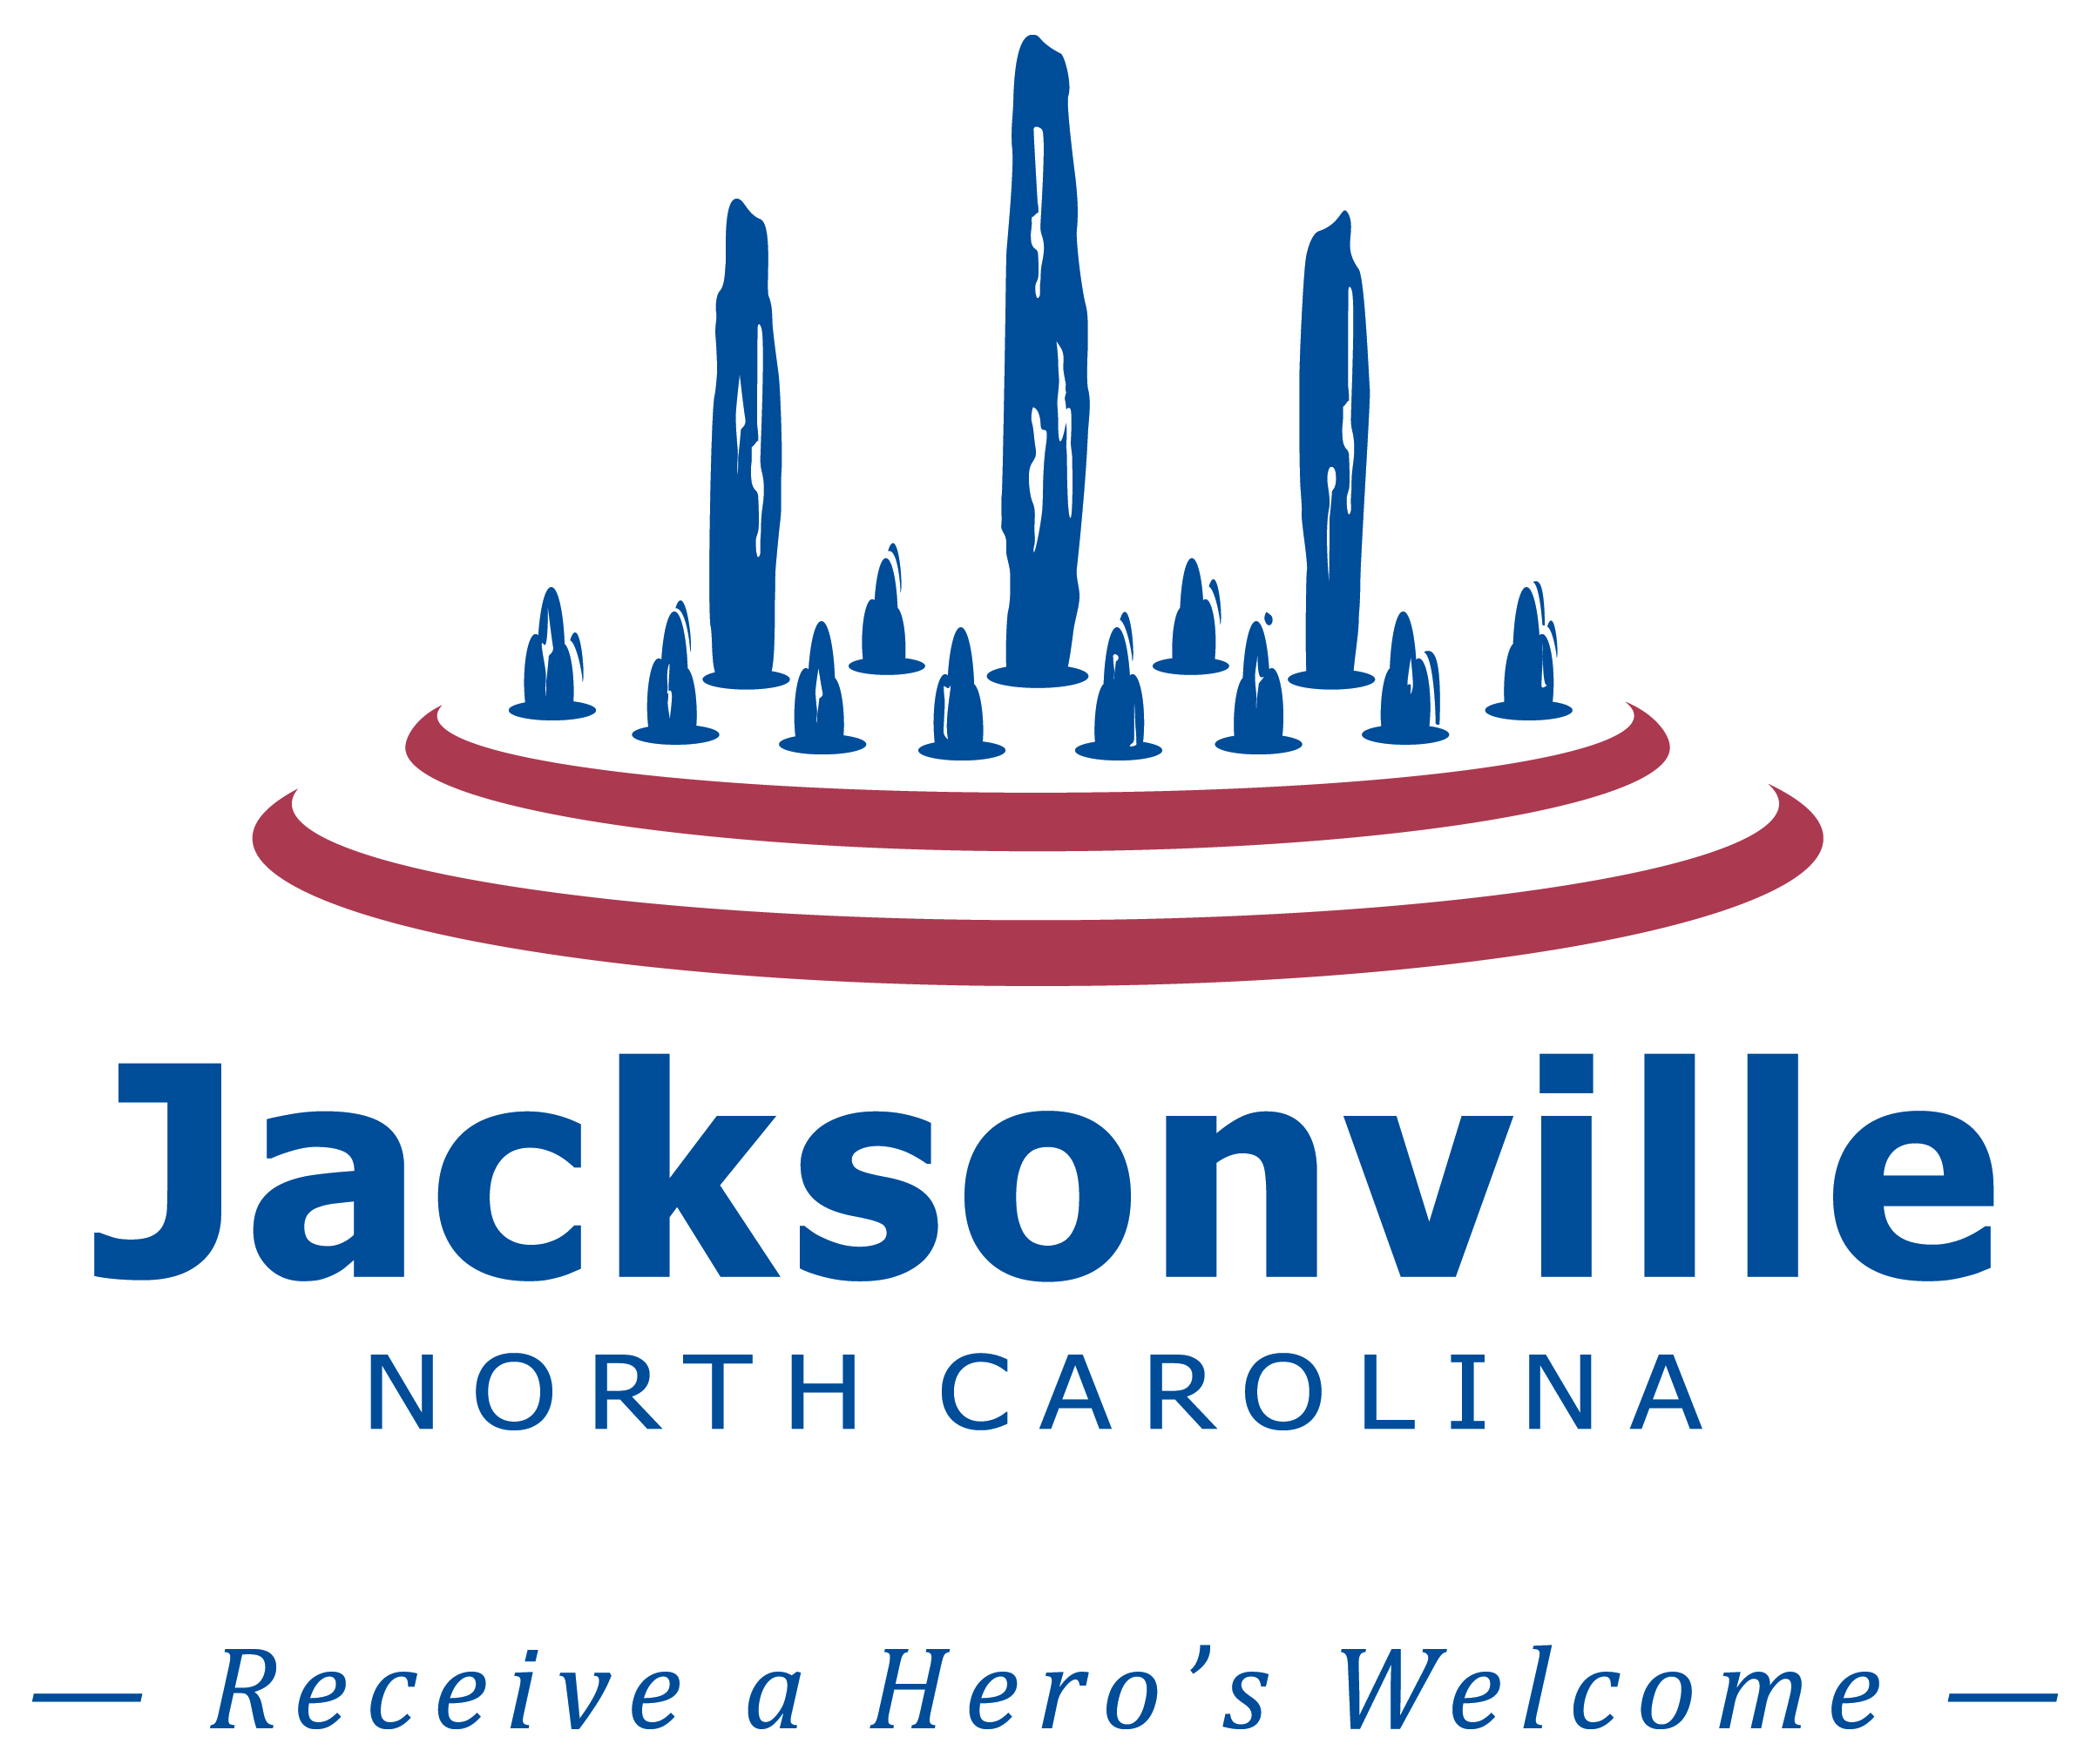 Jacksonville North Carolina - Receive a Hero's Welcome